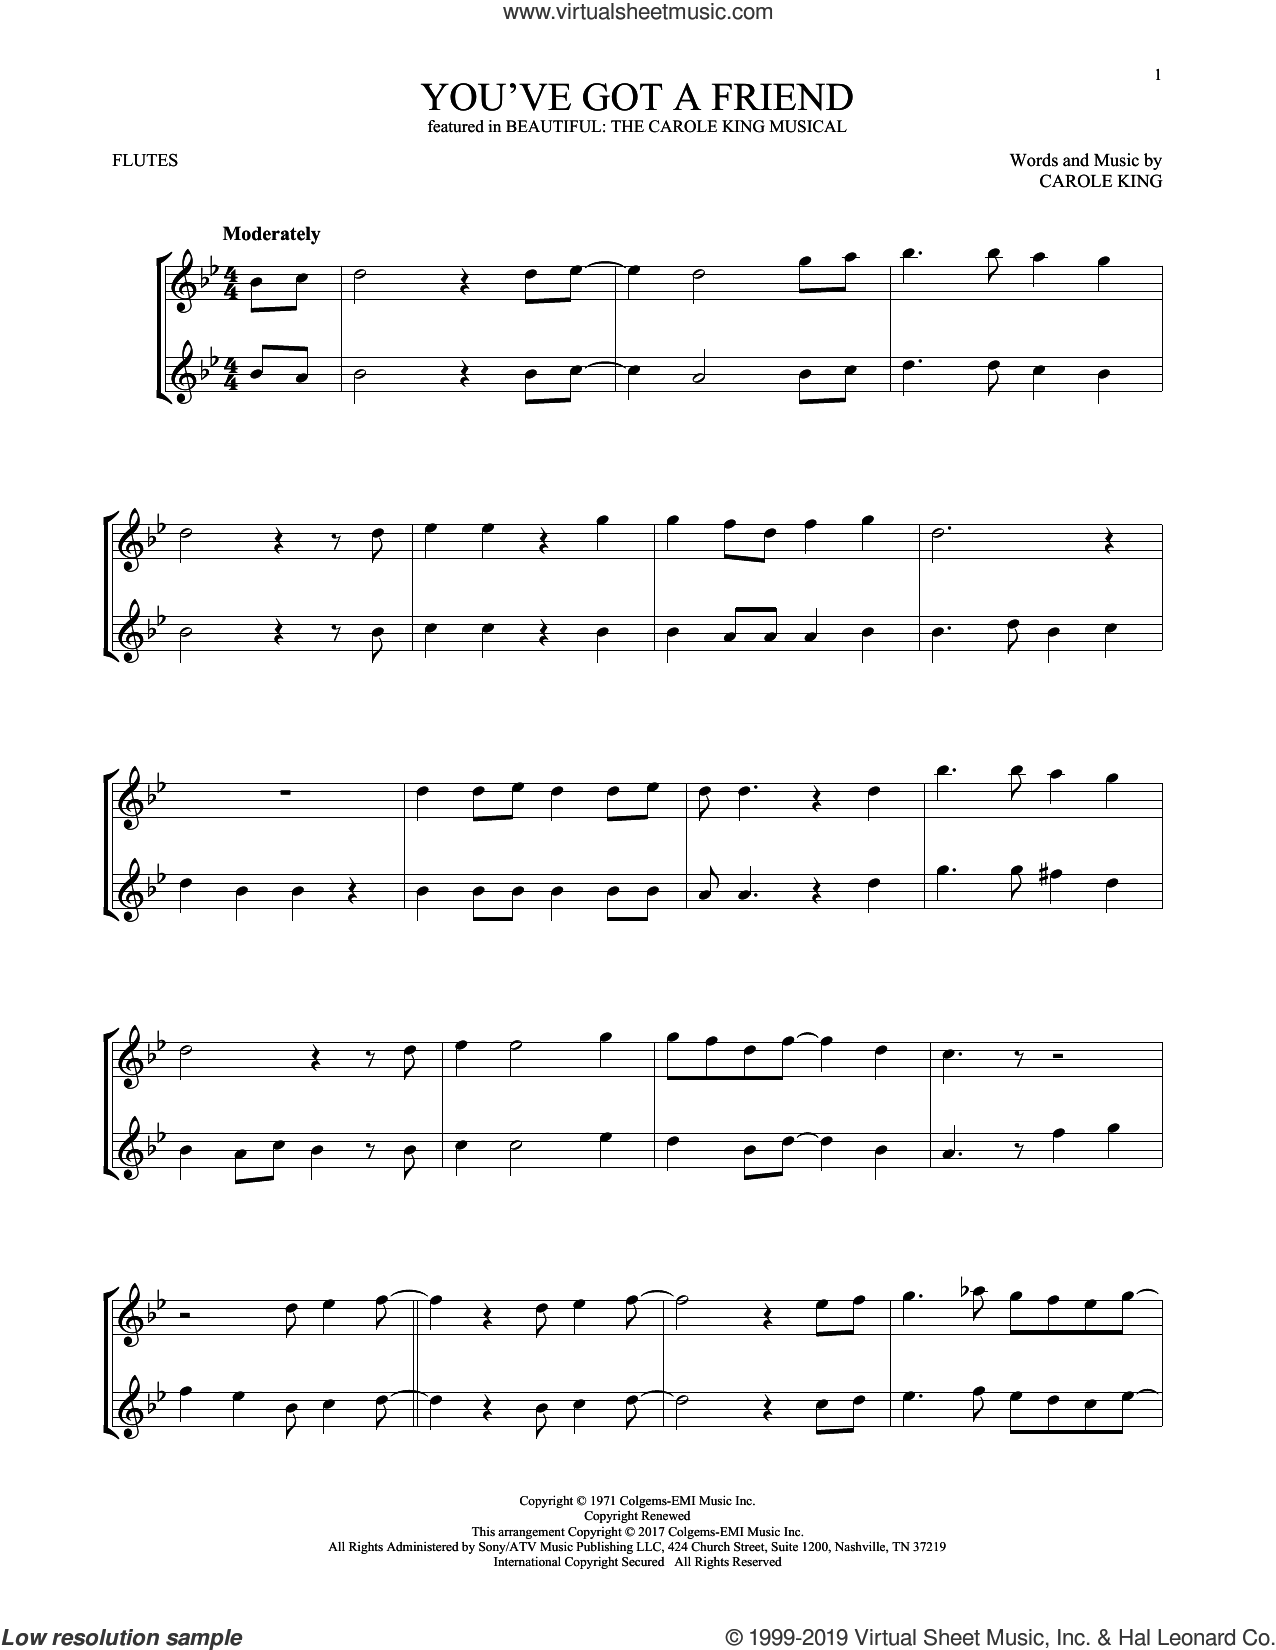 You've Got A Friend (from Beautiful: The Carole King Musical) sheet music for two flutes (duets) by Carole King, intermediate skill level